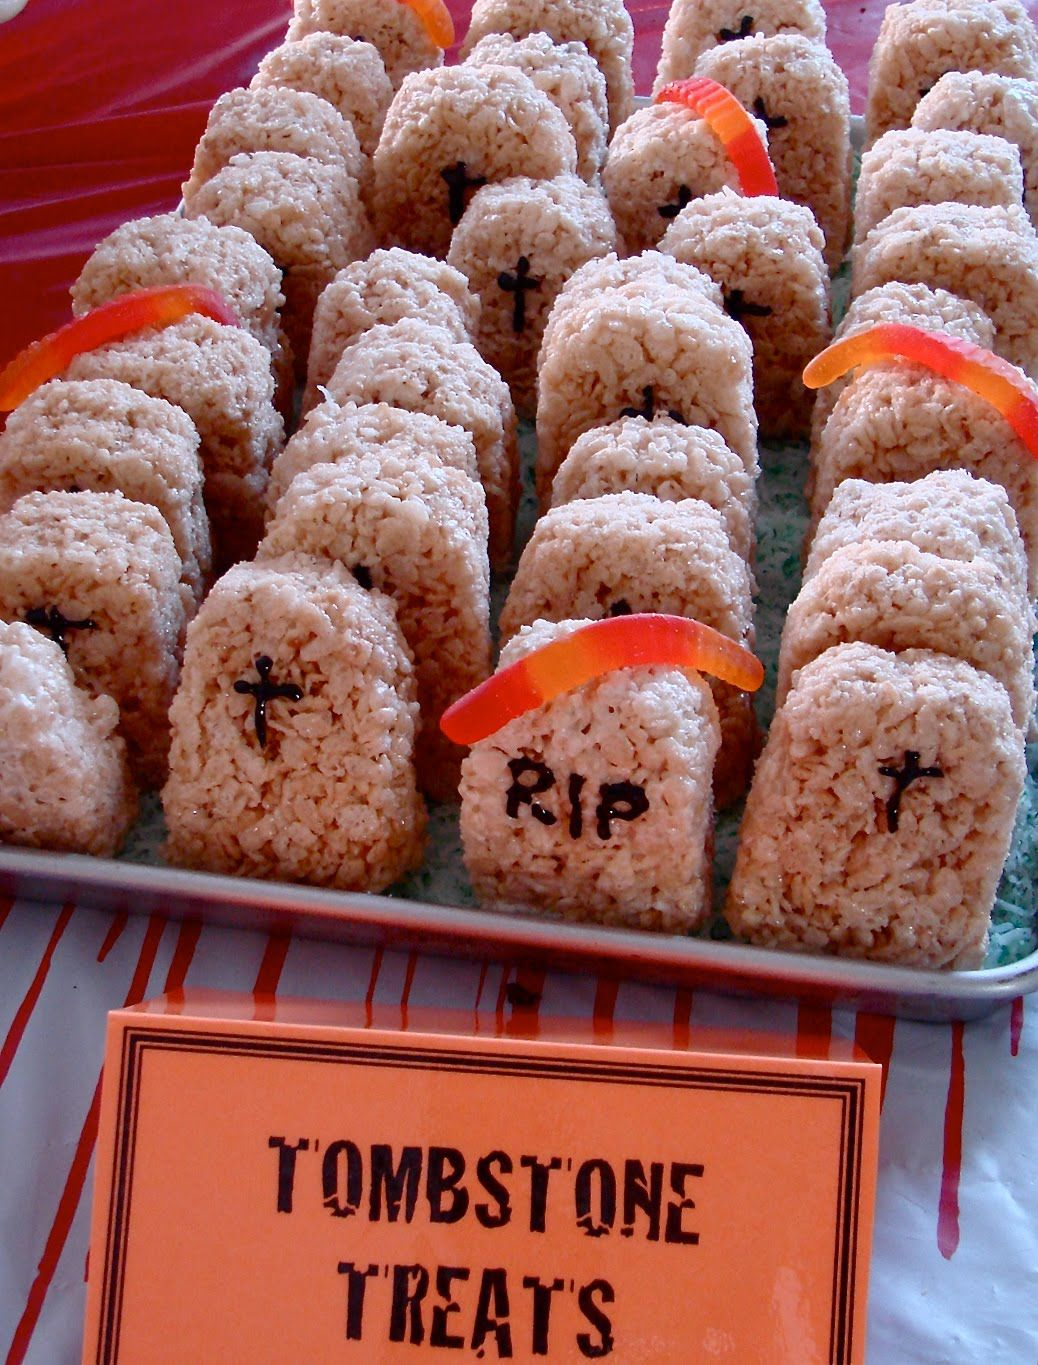 Tombstone Treats Ok This Is What I Am 100 Sure Making For The Chocochips Sully Dress White Halloween Party